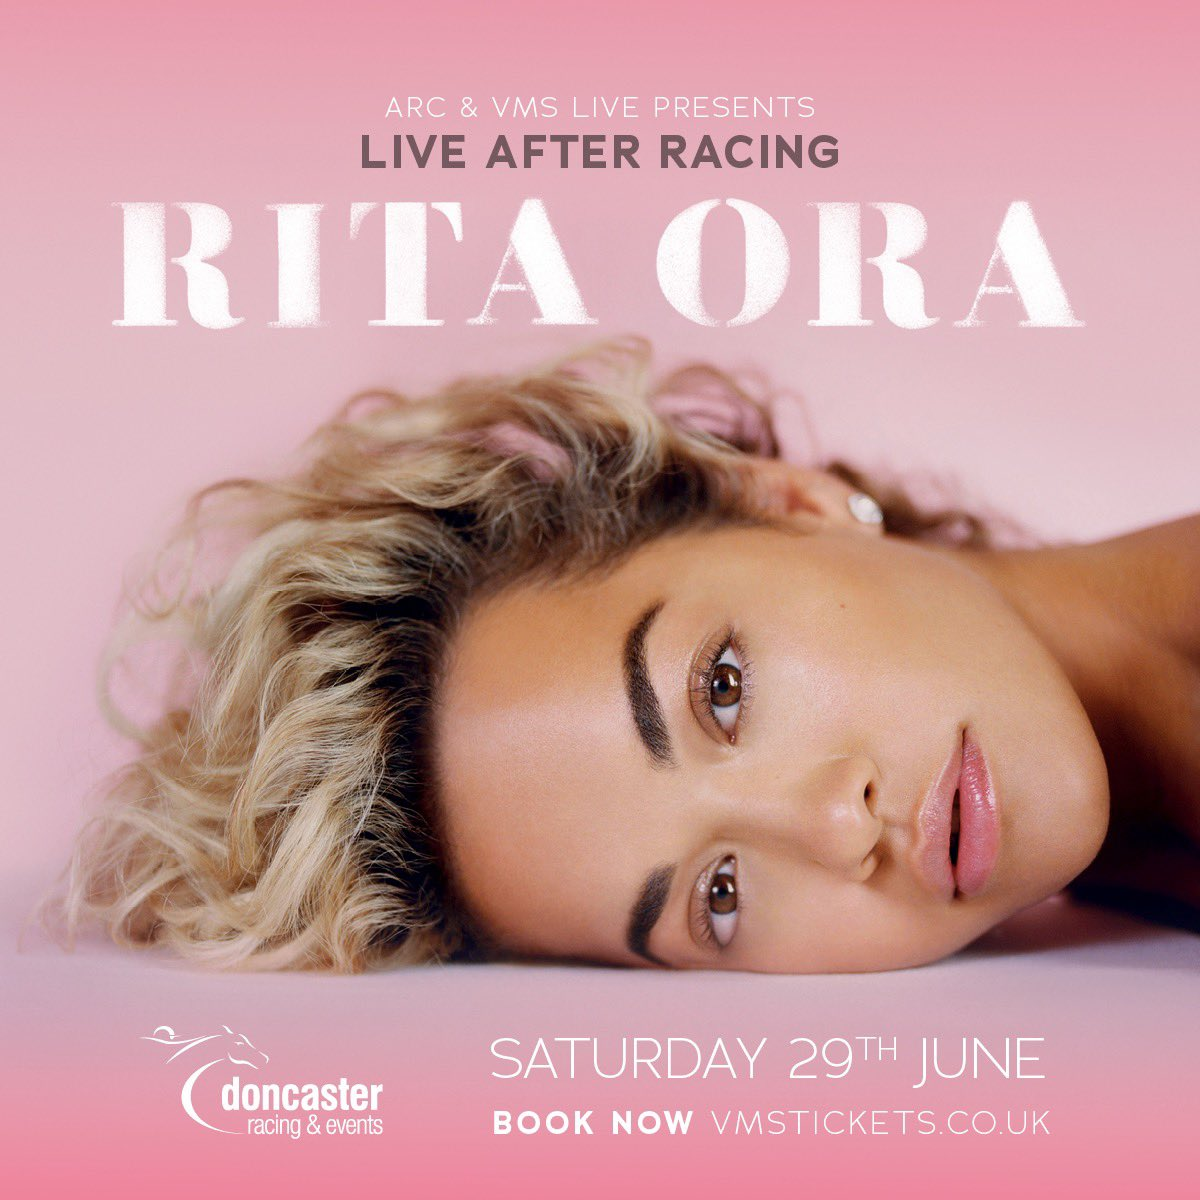 Tickets for my @DoncasterRaces show are on sale NOW! ????????❤️ Get tickets at https://t.co/6jR8D0g86H ???????? https://t.co/2vxaBFzkck